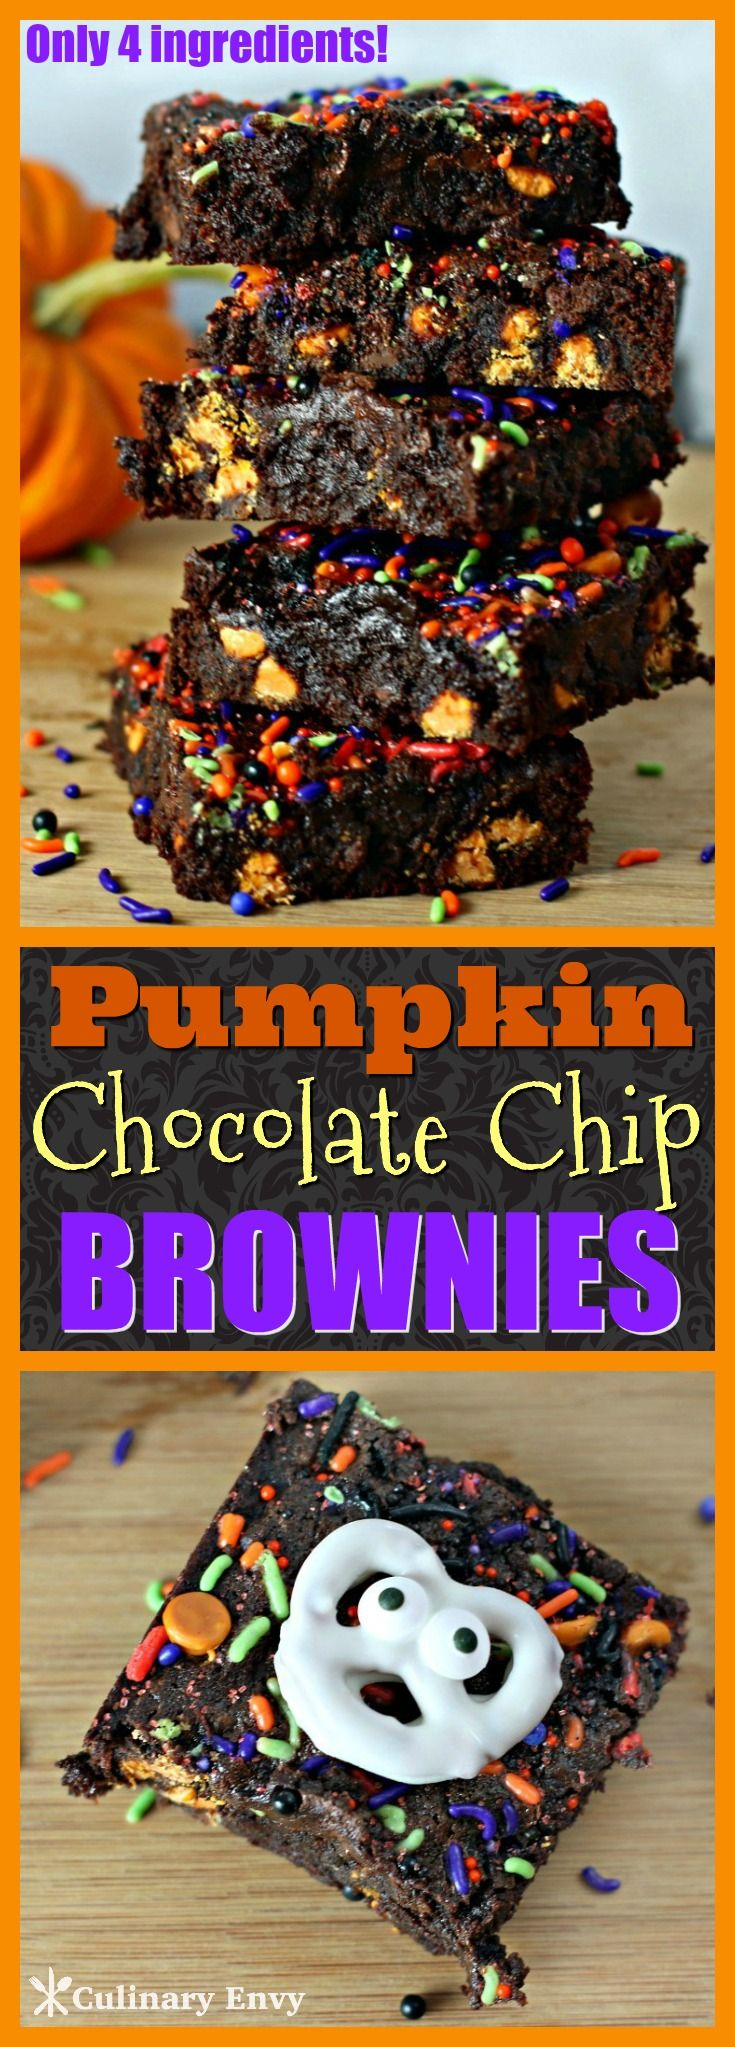 These 4 ingredient Pumpkin Chocolate Chip Brownies are the moistest, most incredibly rich and gooey, best chocolaty brownies with pumpkin chocolate chips you will ever make! Fun Halloween Dessert. Click to read more!